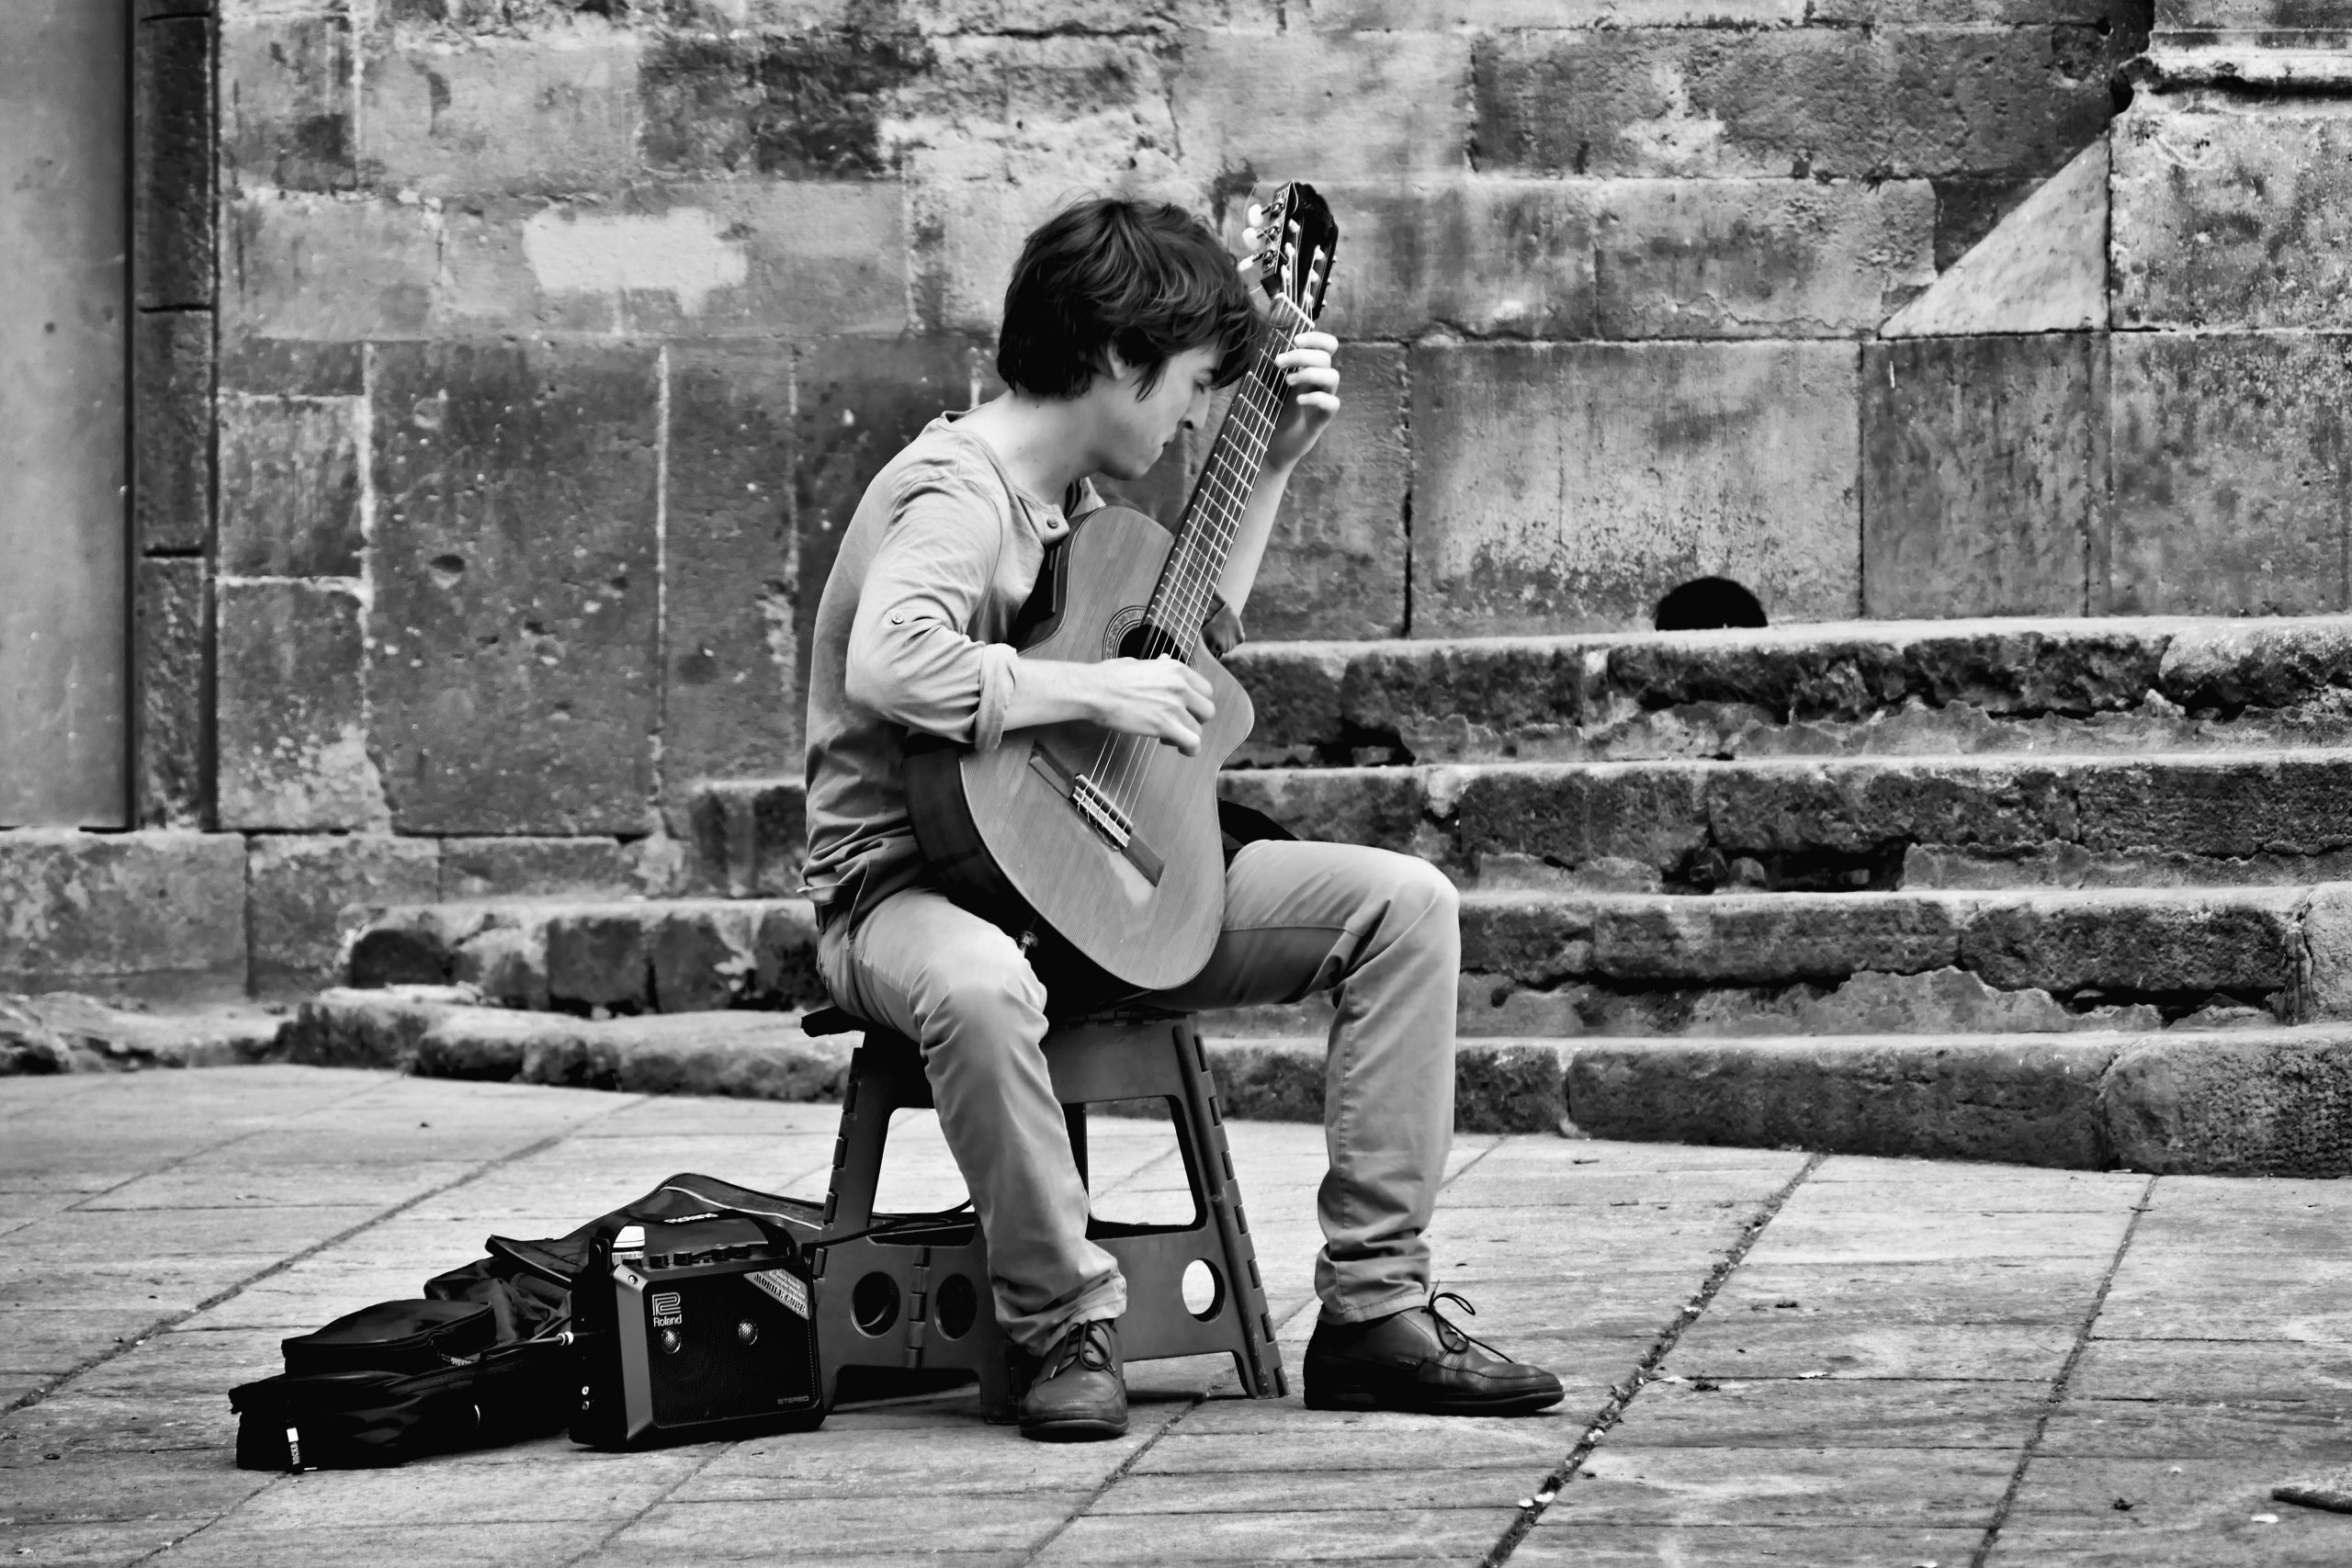 The street: a perfect place to test yourself musically and find new opportunities : play live, find concert dates !